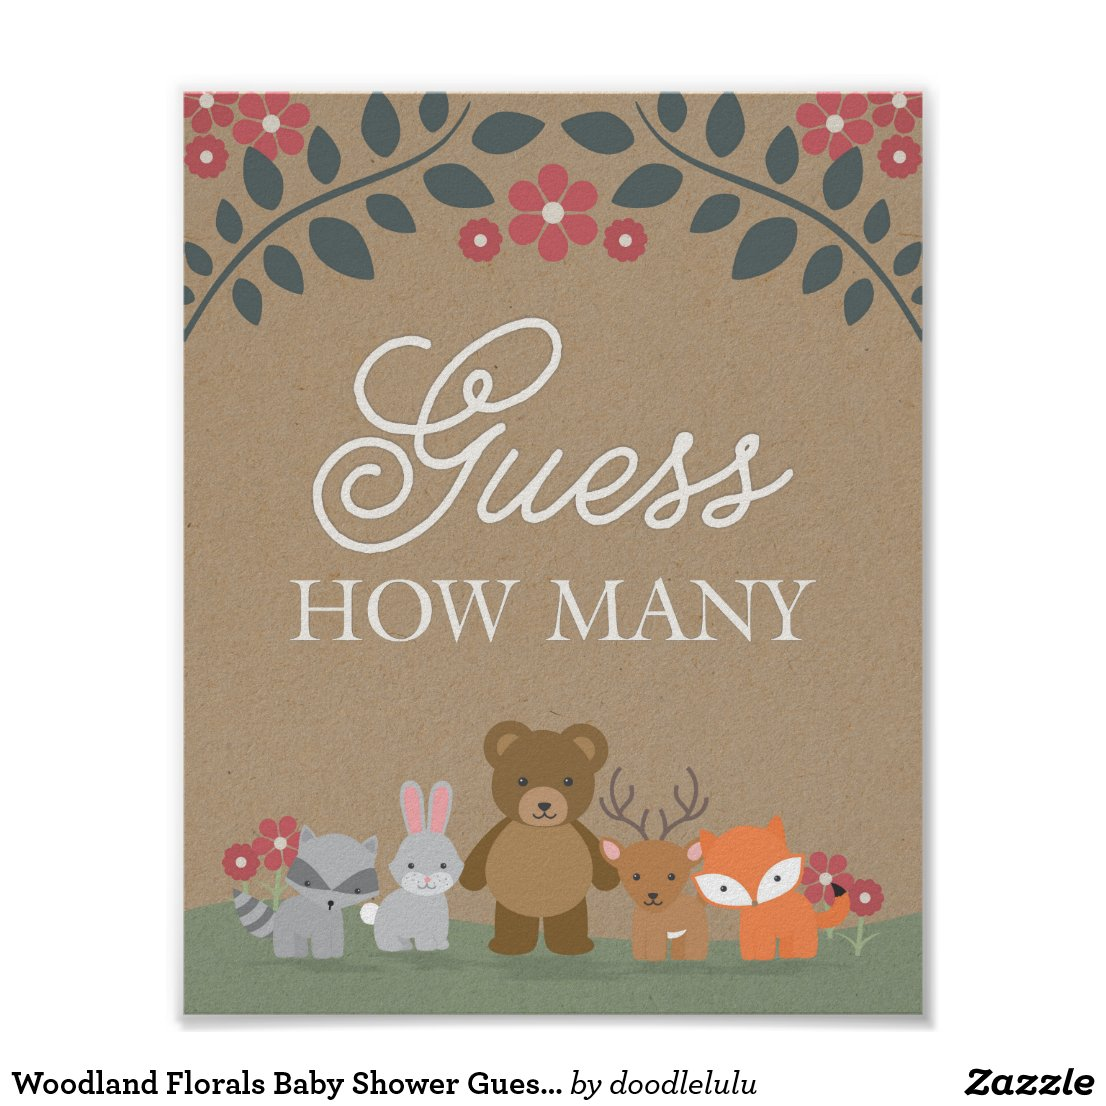 Woodland Florals Baby Shower Guess How Many Game Poster